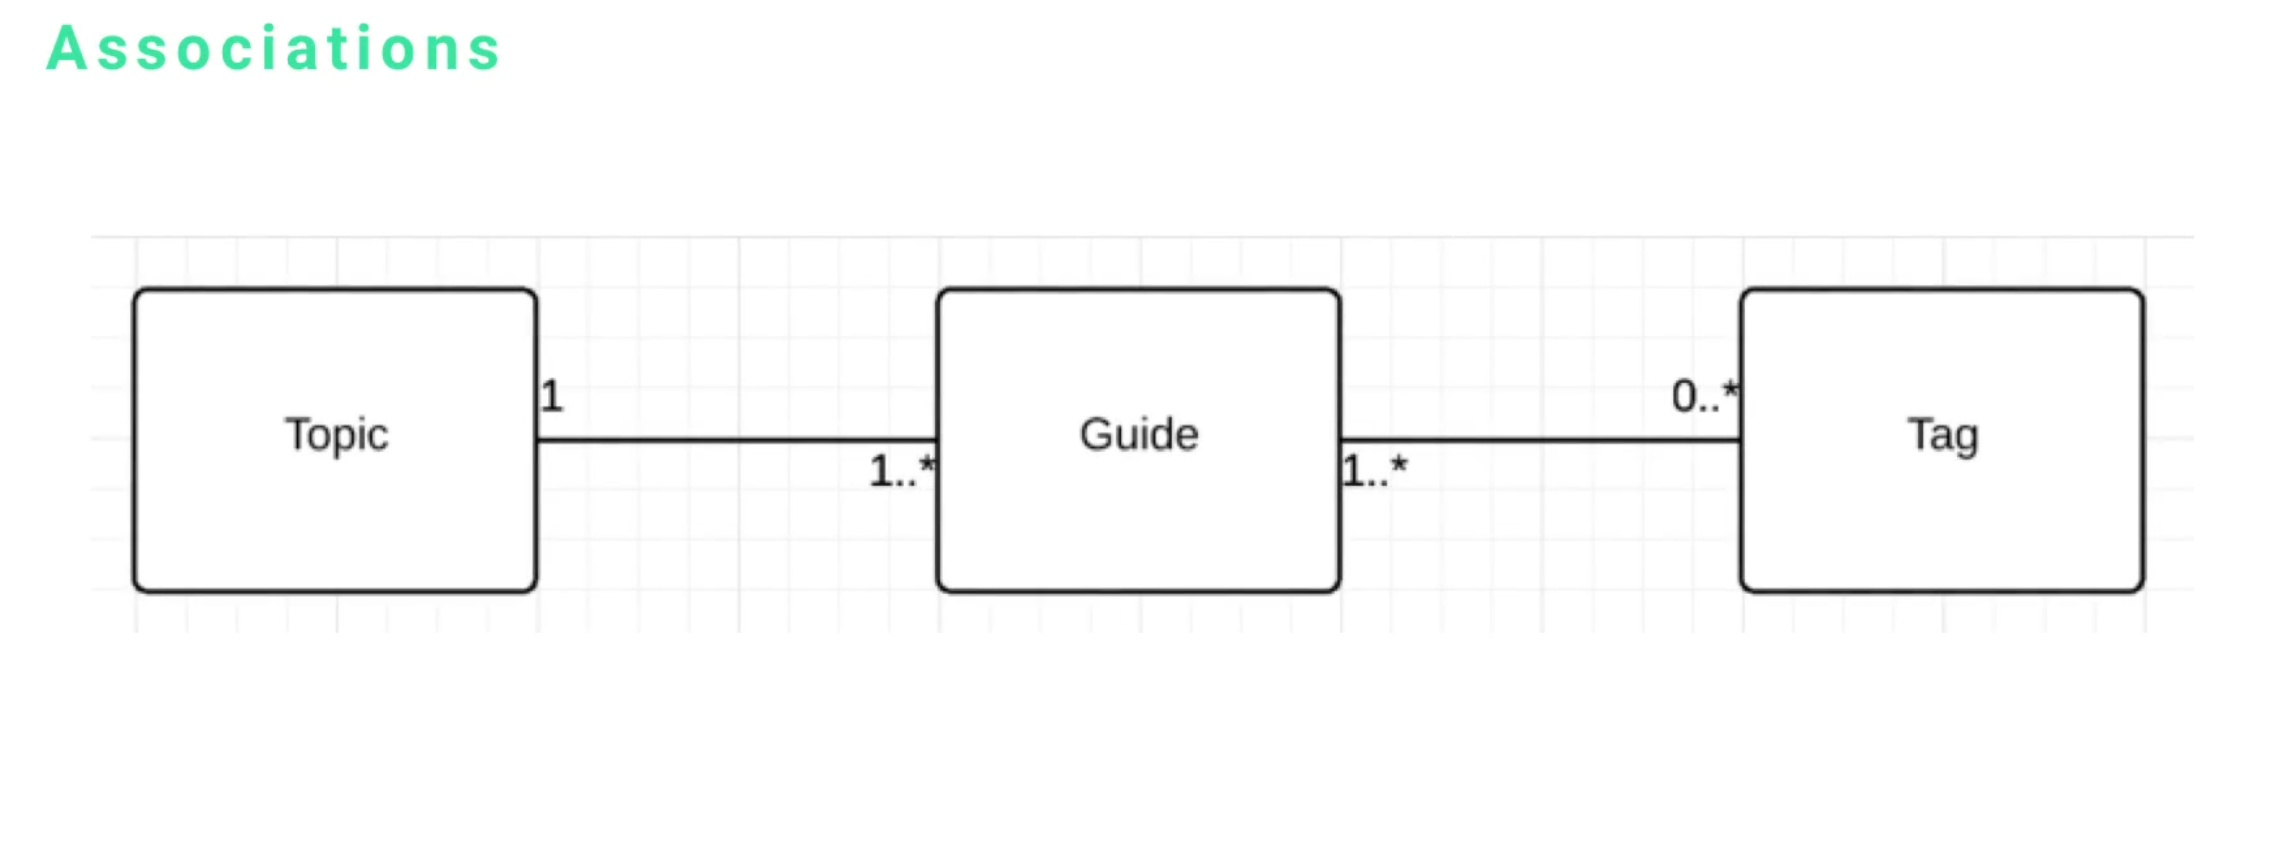 Uml class diagram associations multiplicity and navigability i have a topic class which is connected to a guide which is connected to a tag class each of these have a relationshipassociation with the other one pooptronica